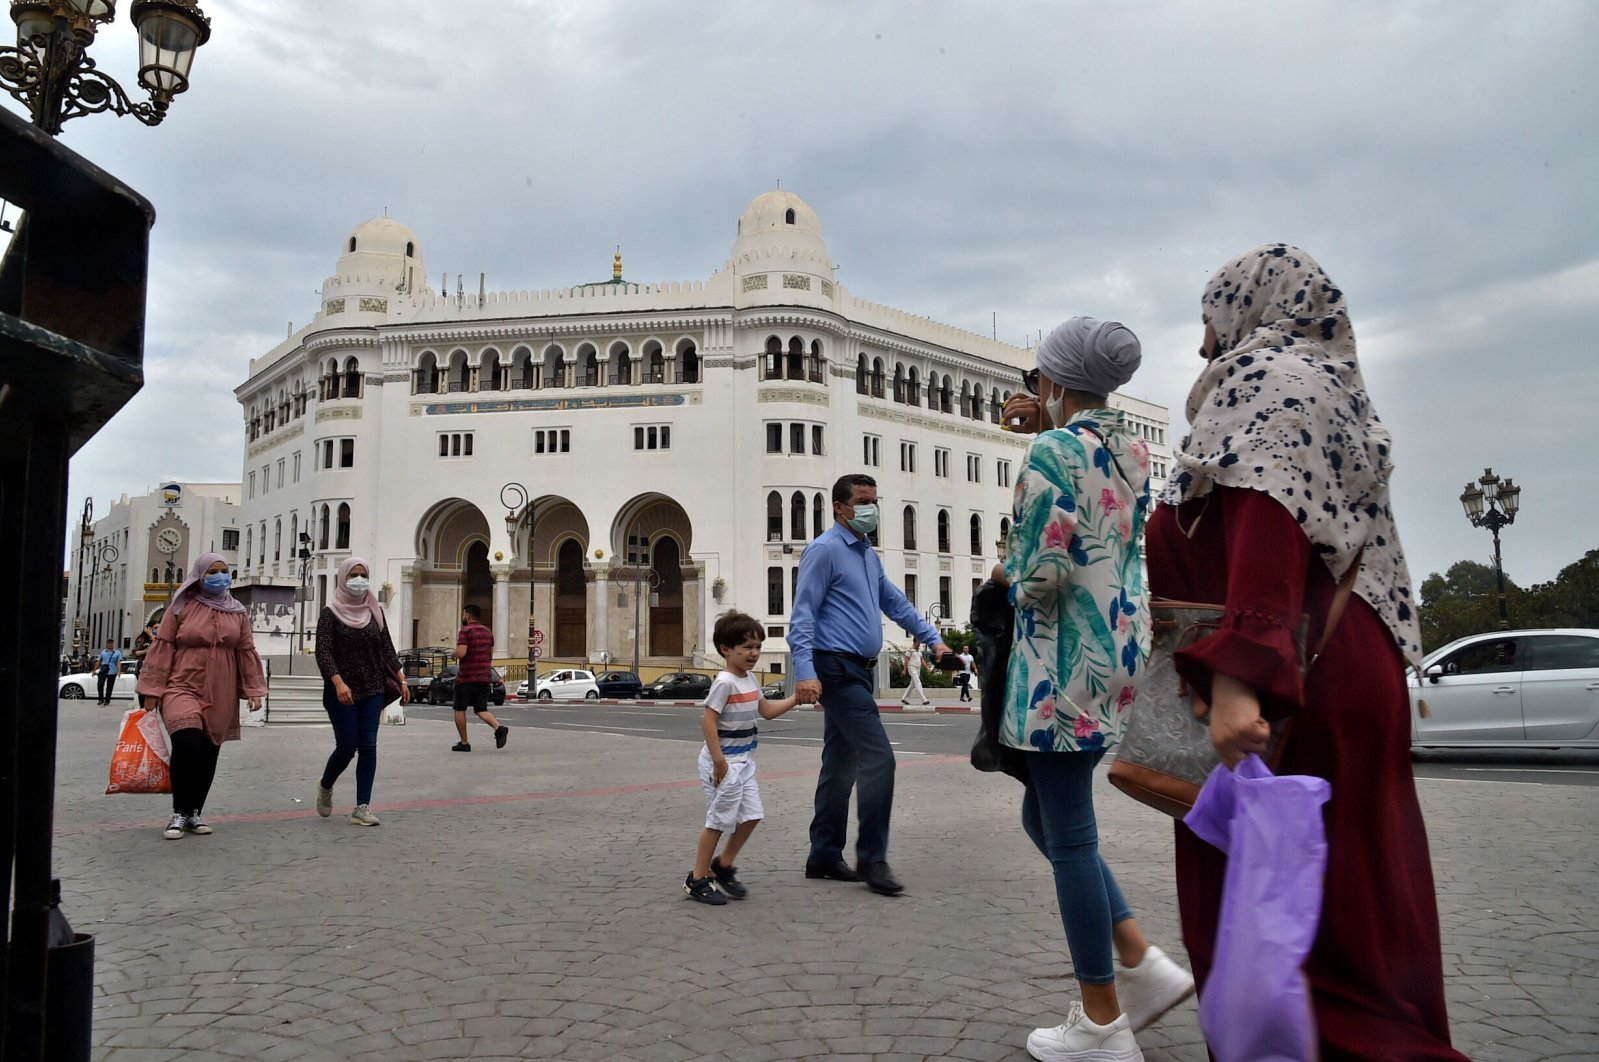 People wearing protective masks walk past the La Grande Poste (main post office) building in the center of the capital Algiers, Algeria, Aug. 12, 2020. (AFP Photo)